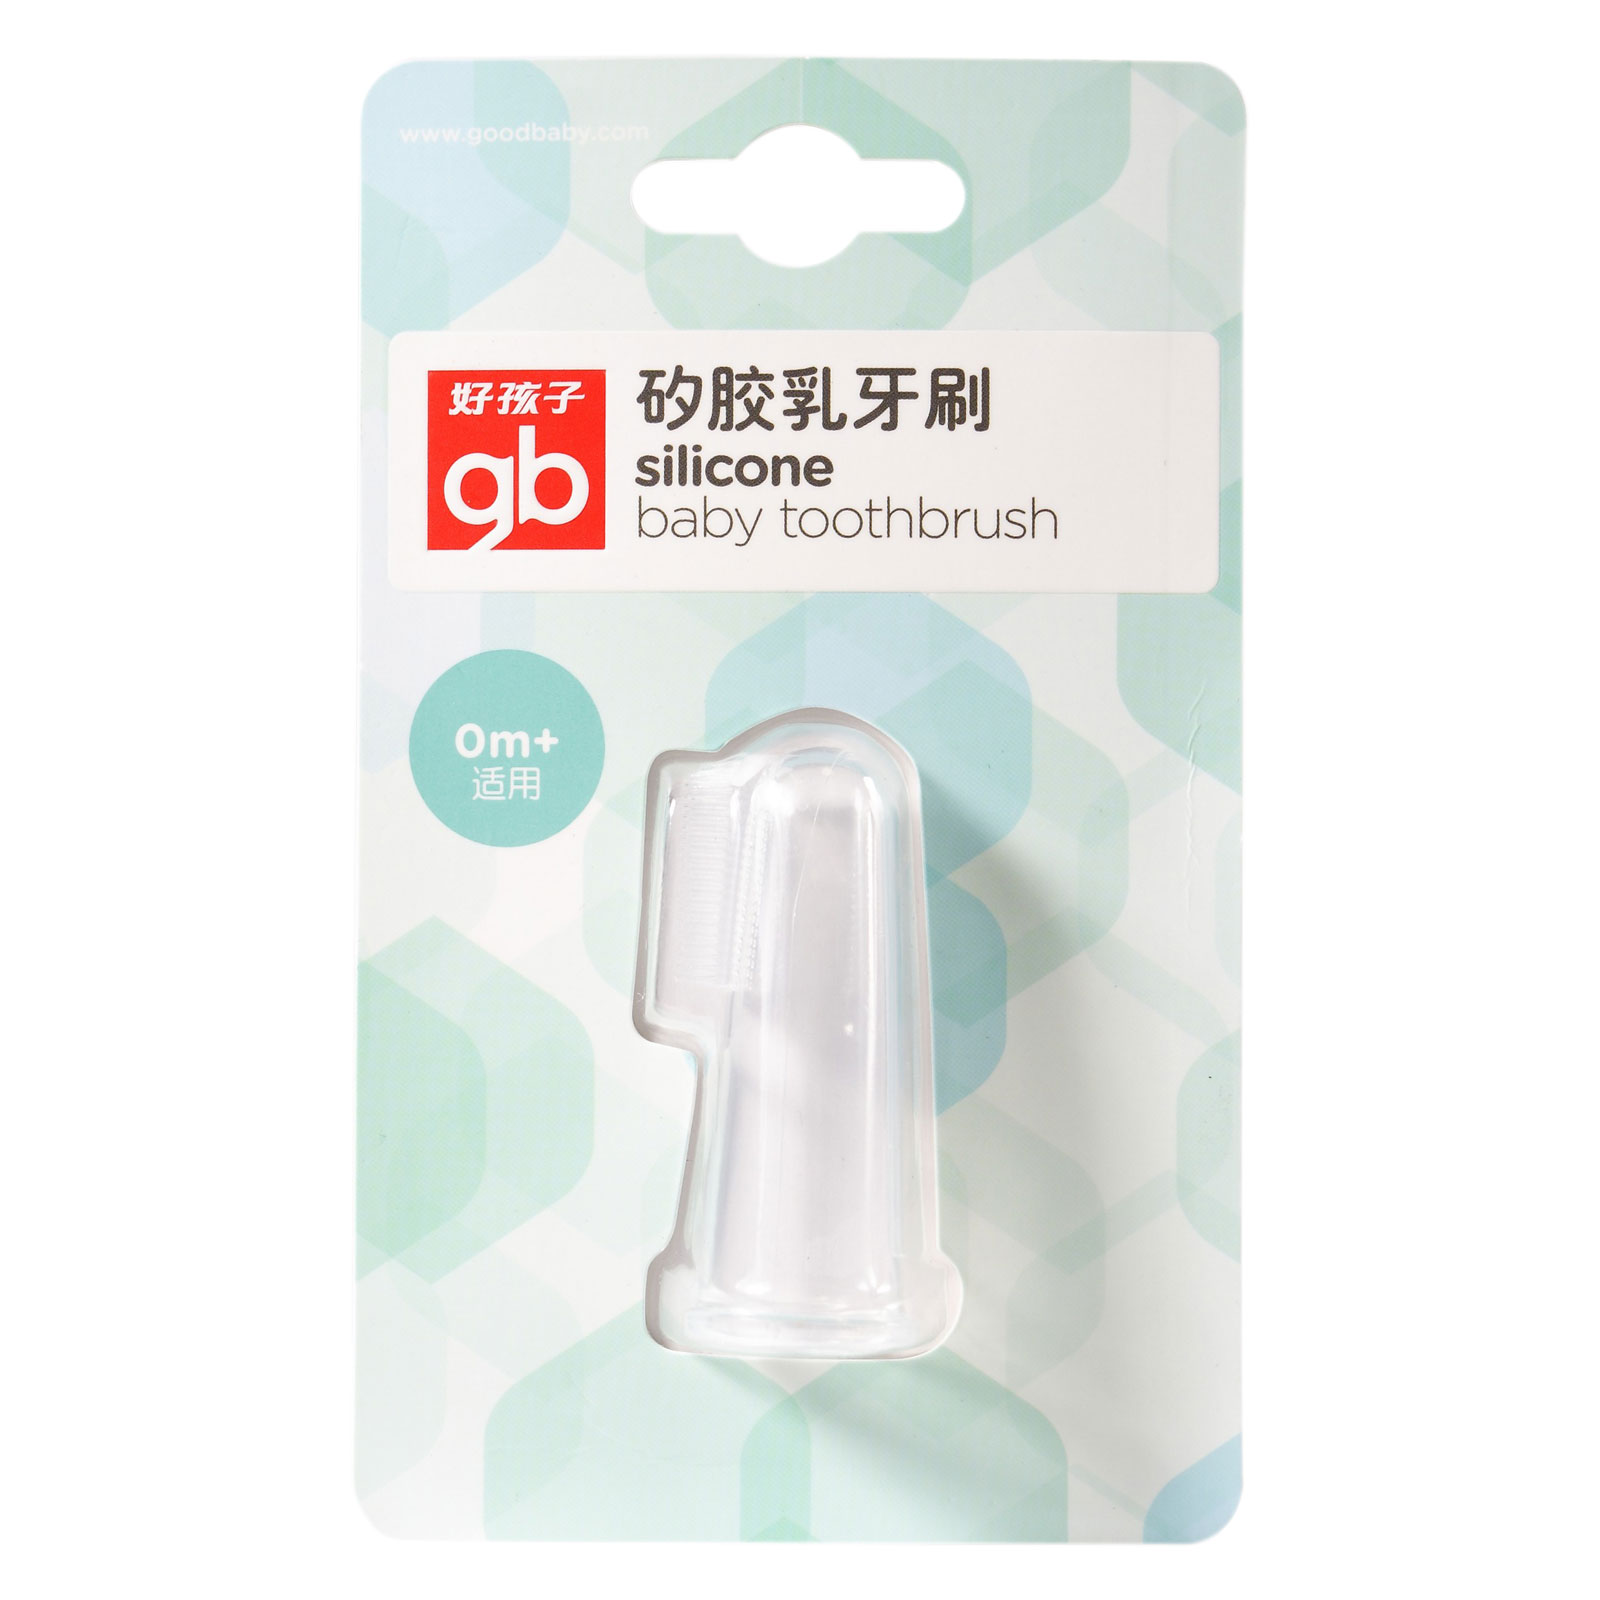 Boy baby massage toothbrush baby finger toothbrush milk toothbrush silicone baby toothbrush with a toothbrush f80013